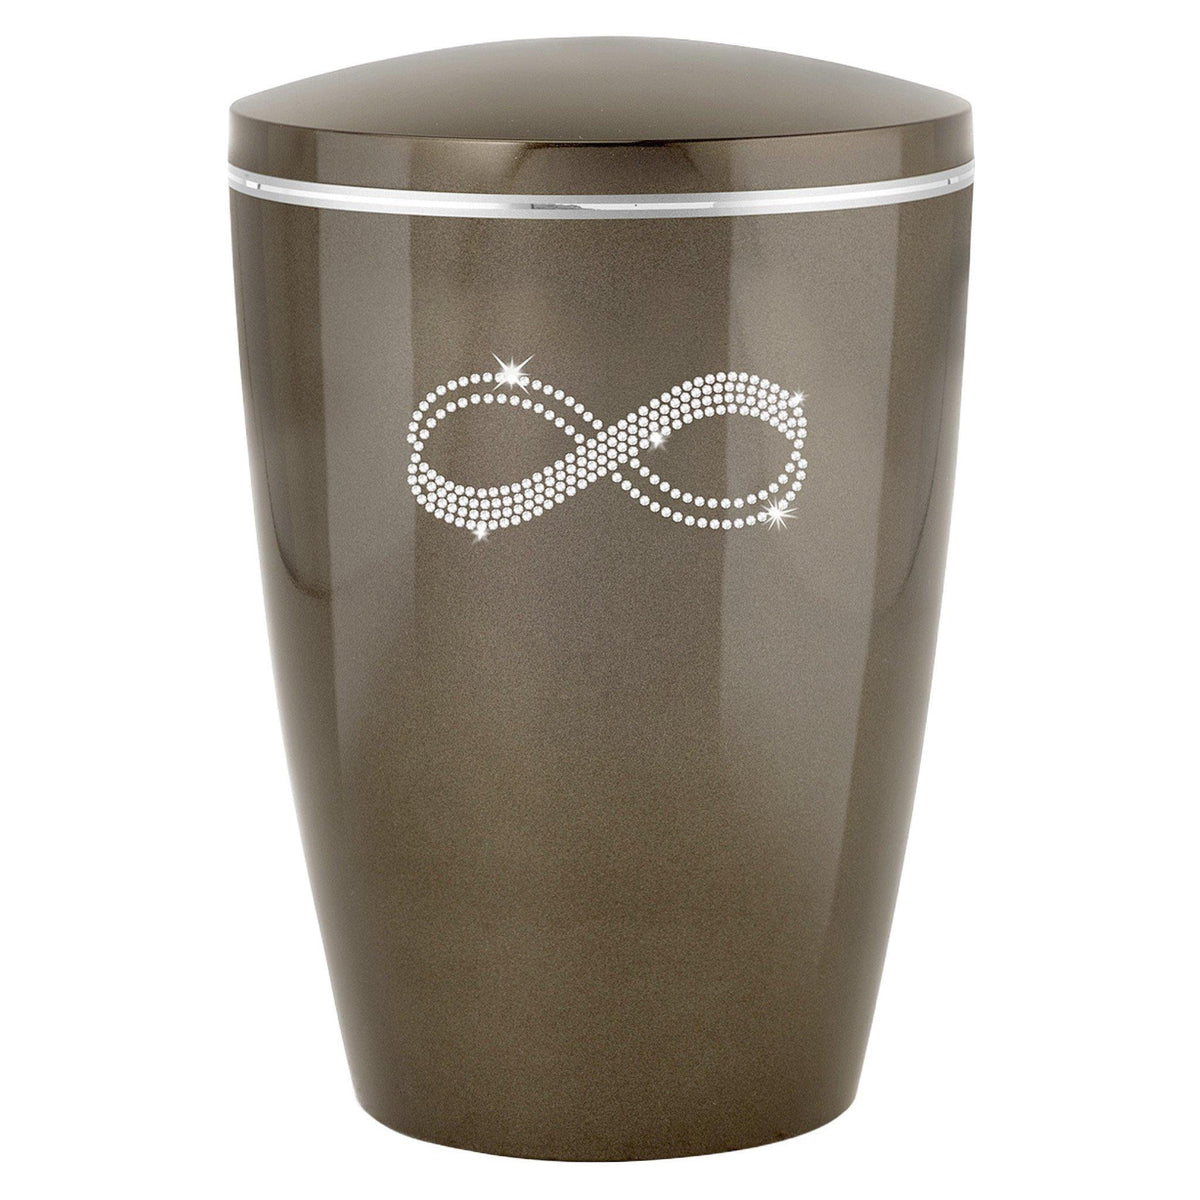 Crystal Infinity Biodegradable Cremation Ashes Urn - Urns UK